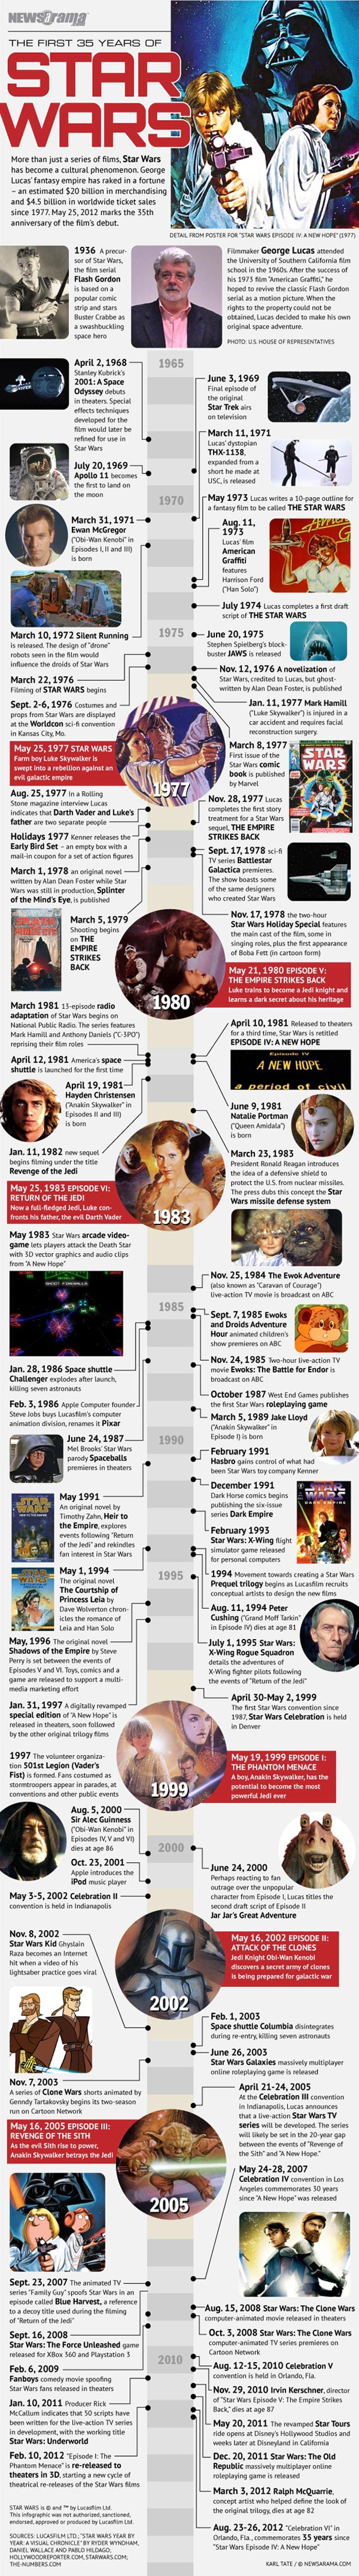 Happy 35th Anniversary Star Wars [2 Timeline Infographics]